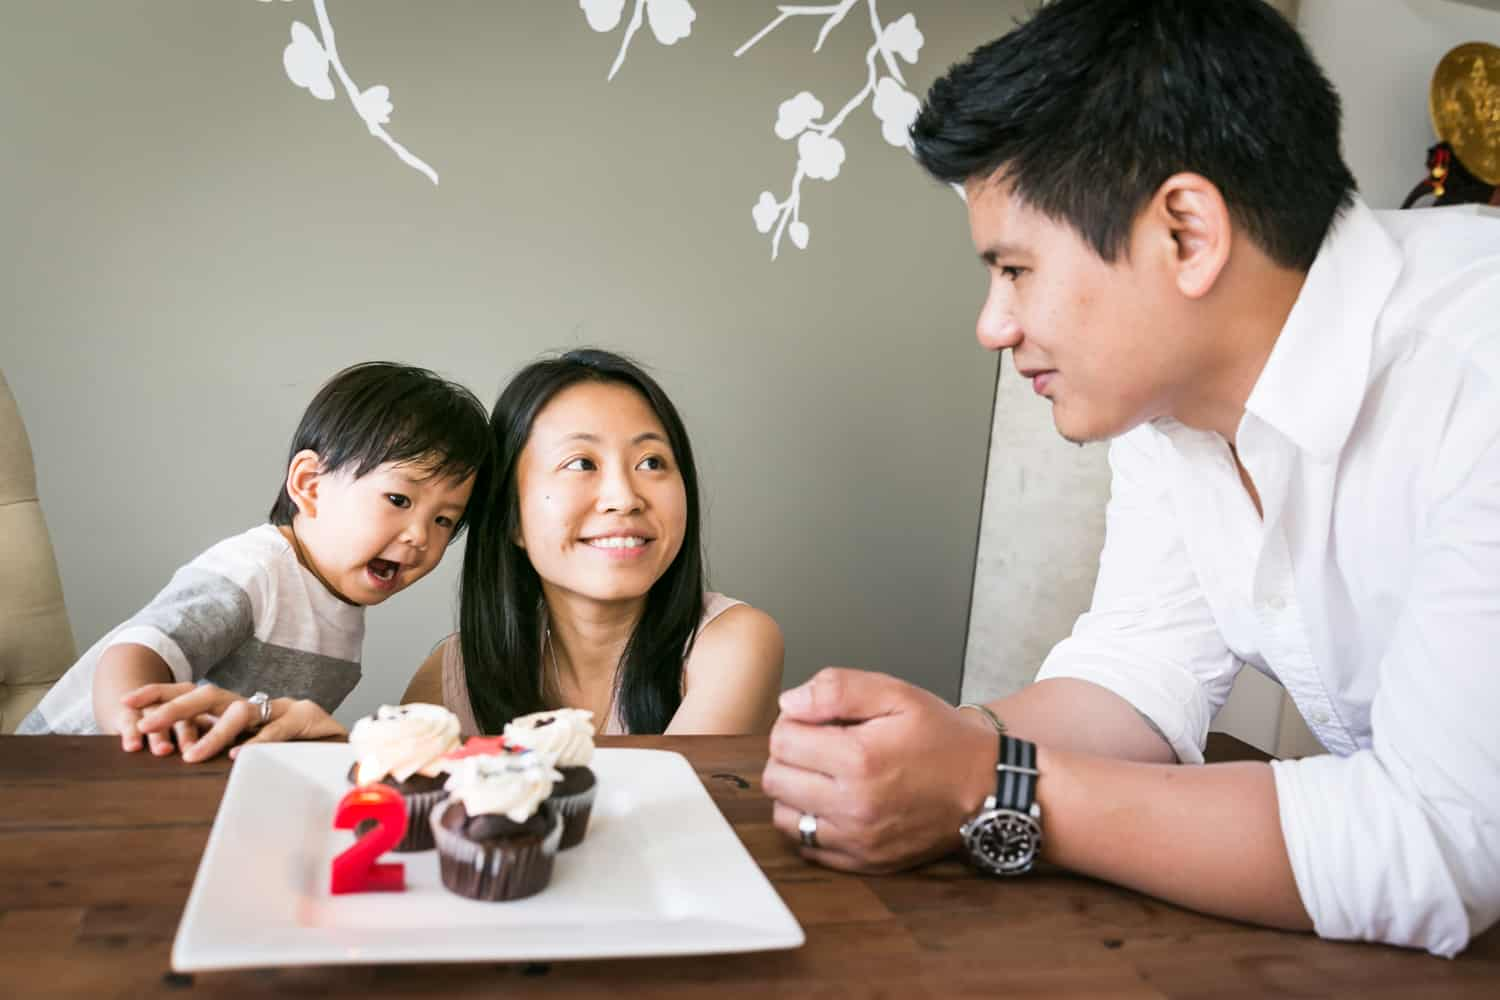 Manhattan family portrait of parents and child eating cupcakes